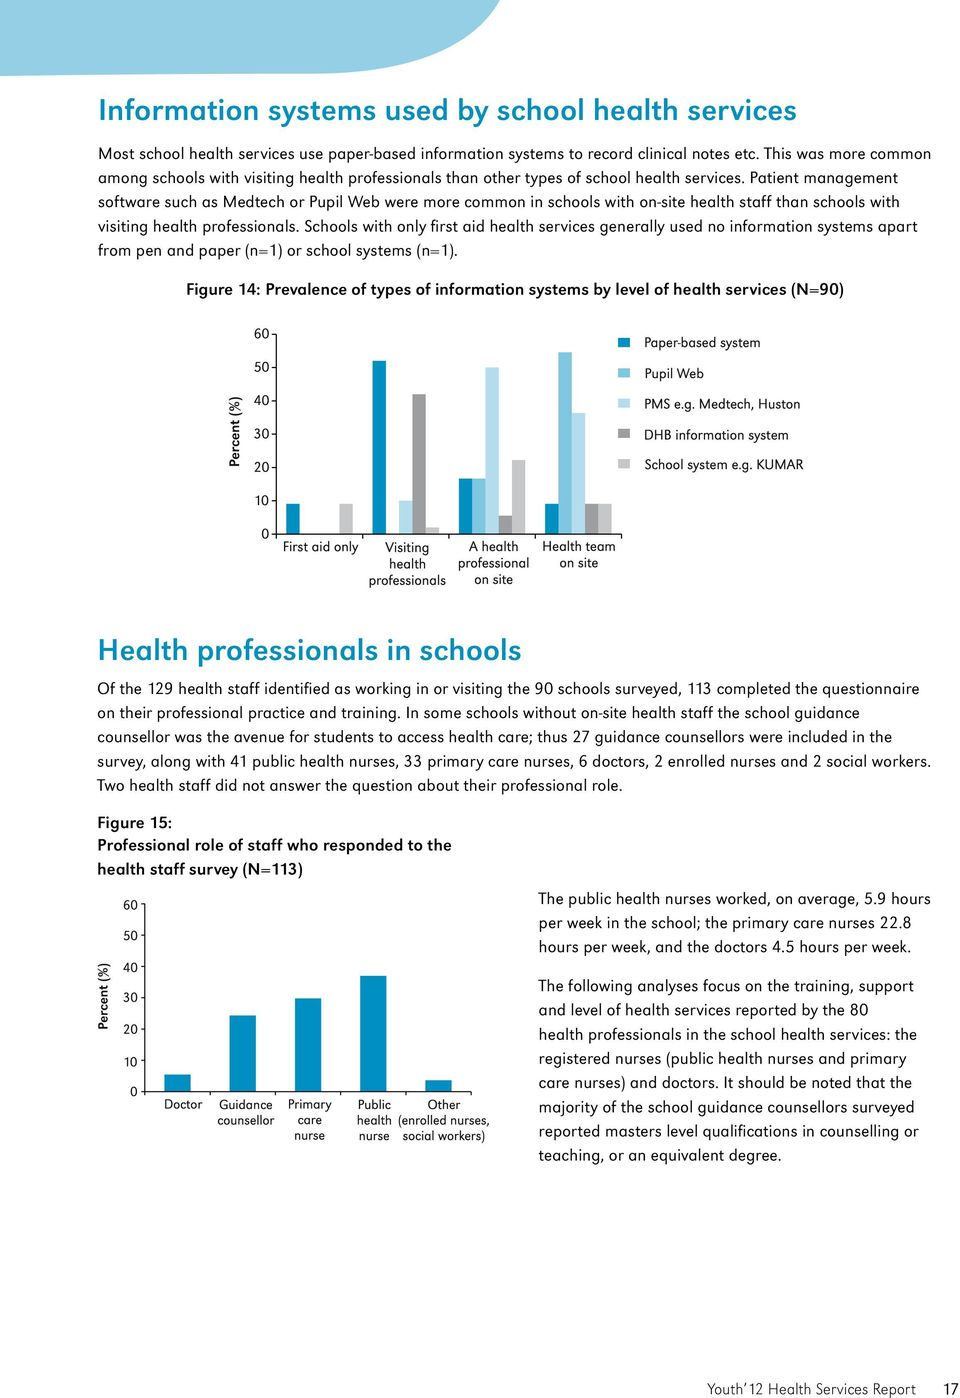 Patient management software such as Medtech or Pupil Web were more common in schools with on-site health staff than schools with visiting health professionals.